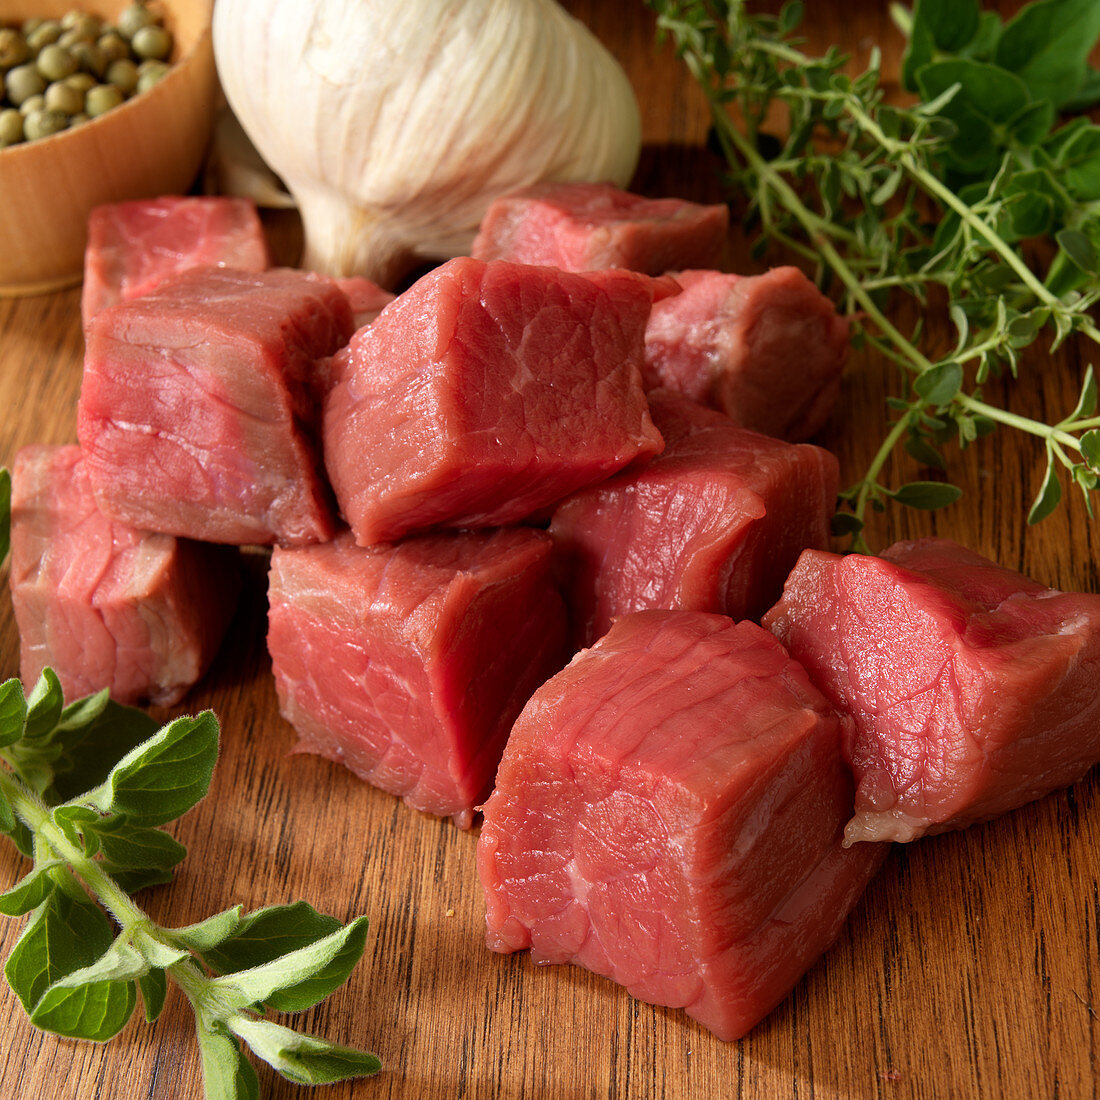 Raw beef cut into cubes with garlic and herbs